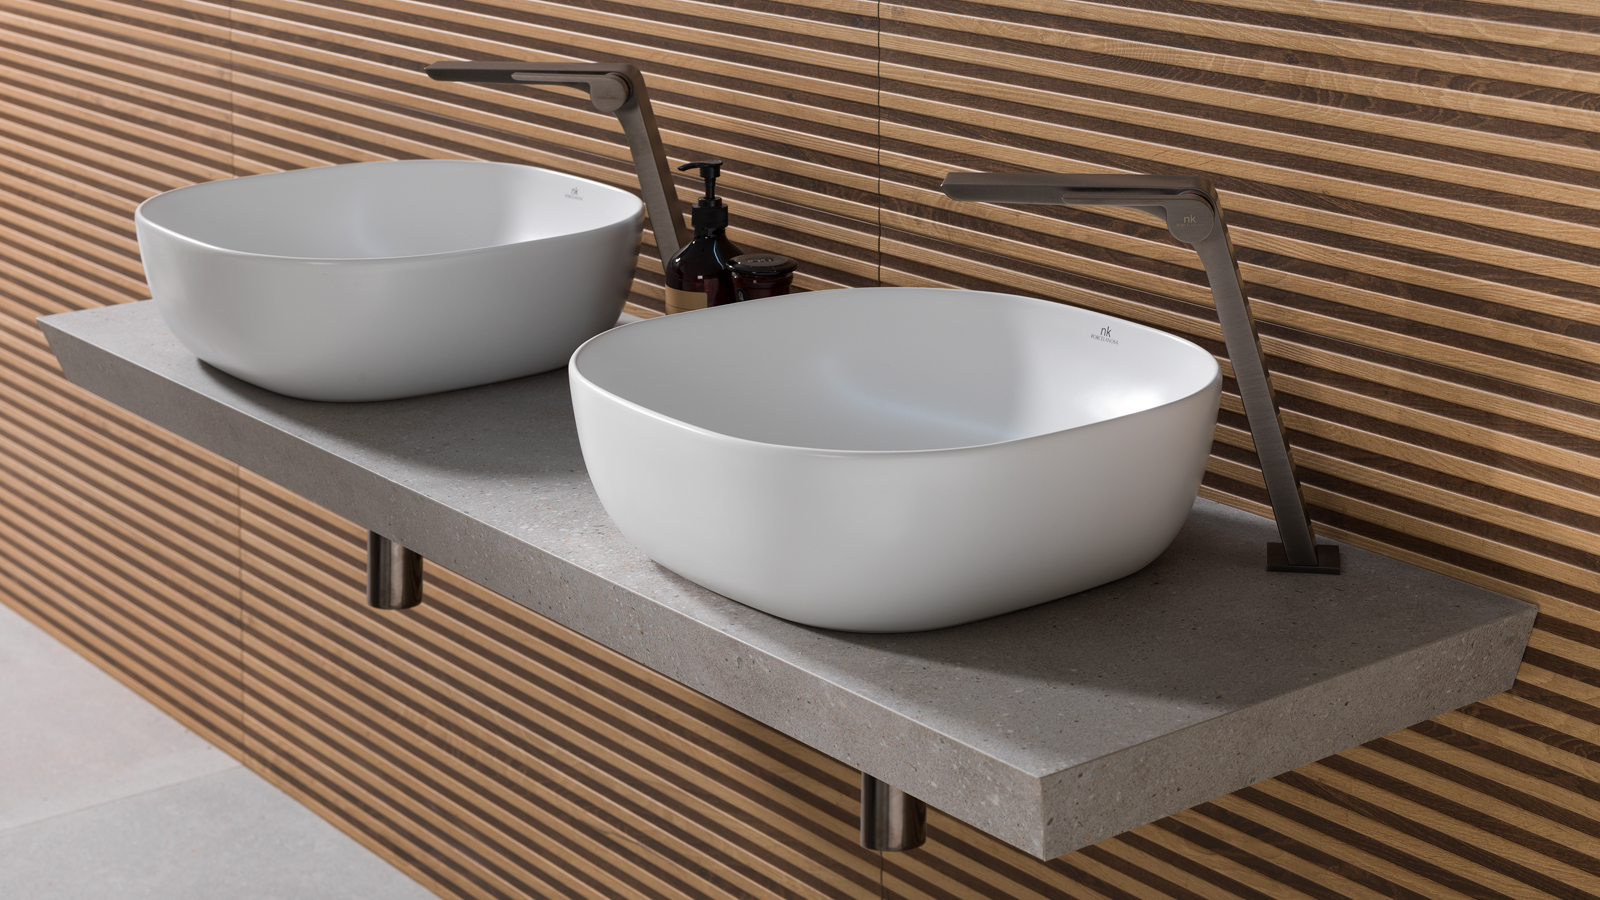 PORCELANOSA Virtual Exhibition: Noken's new bathrooms combine well-being and sustainability with more natural designs